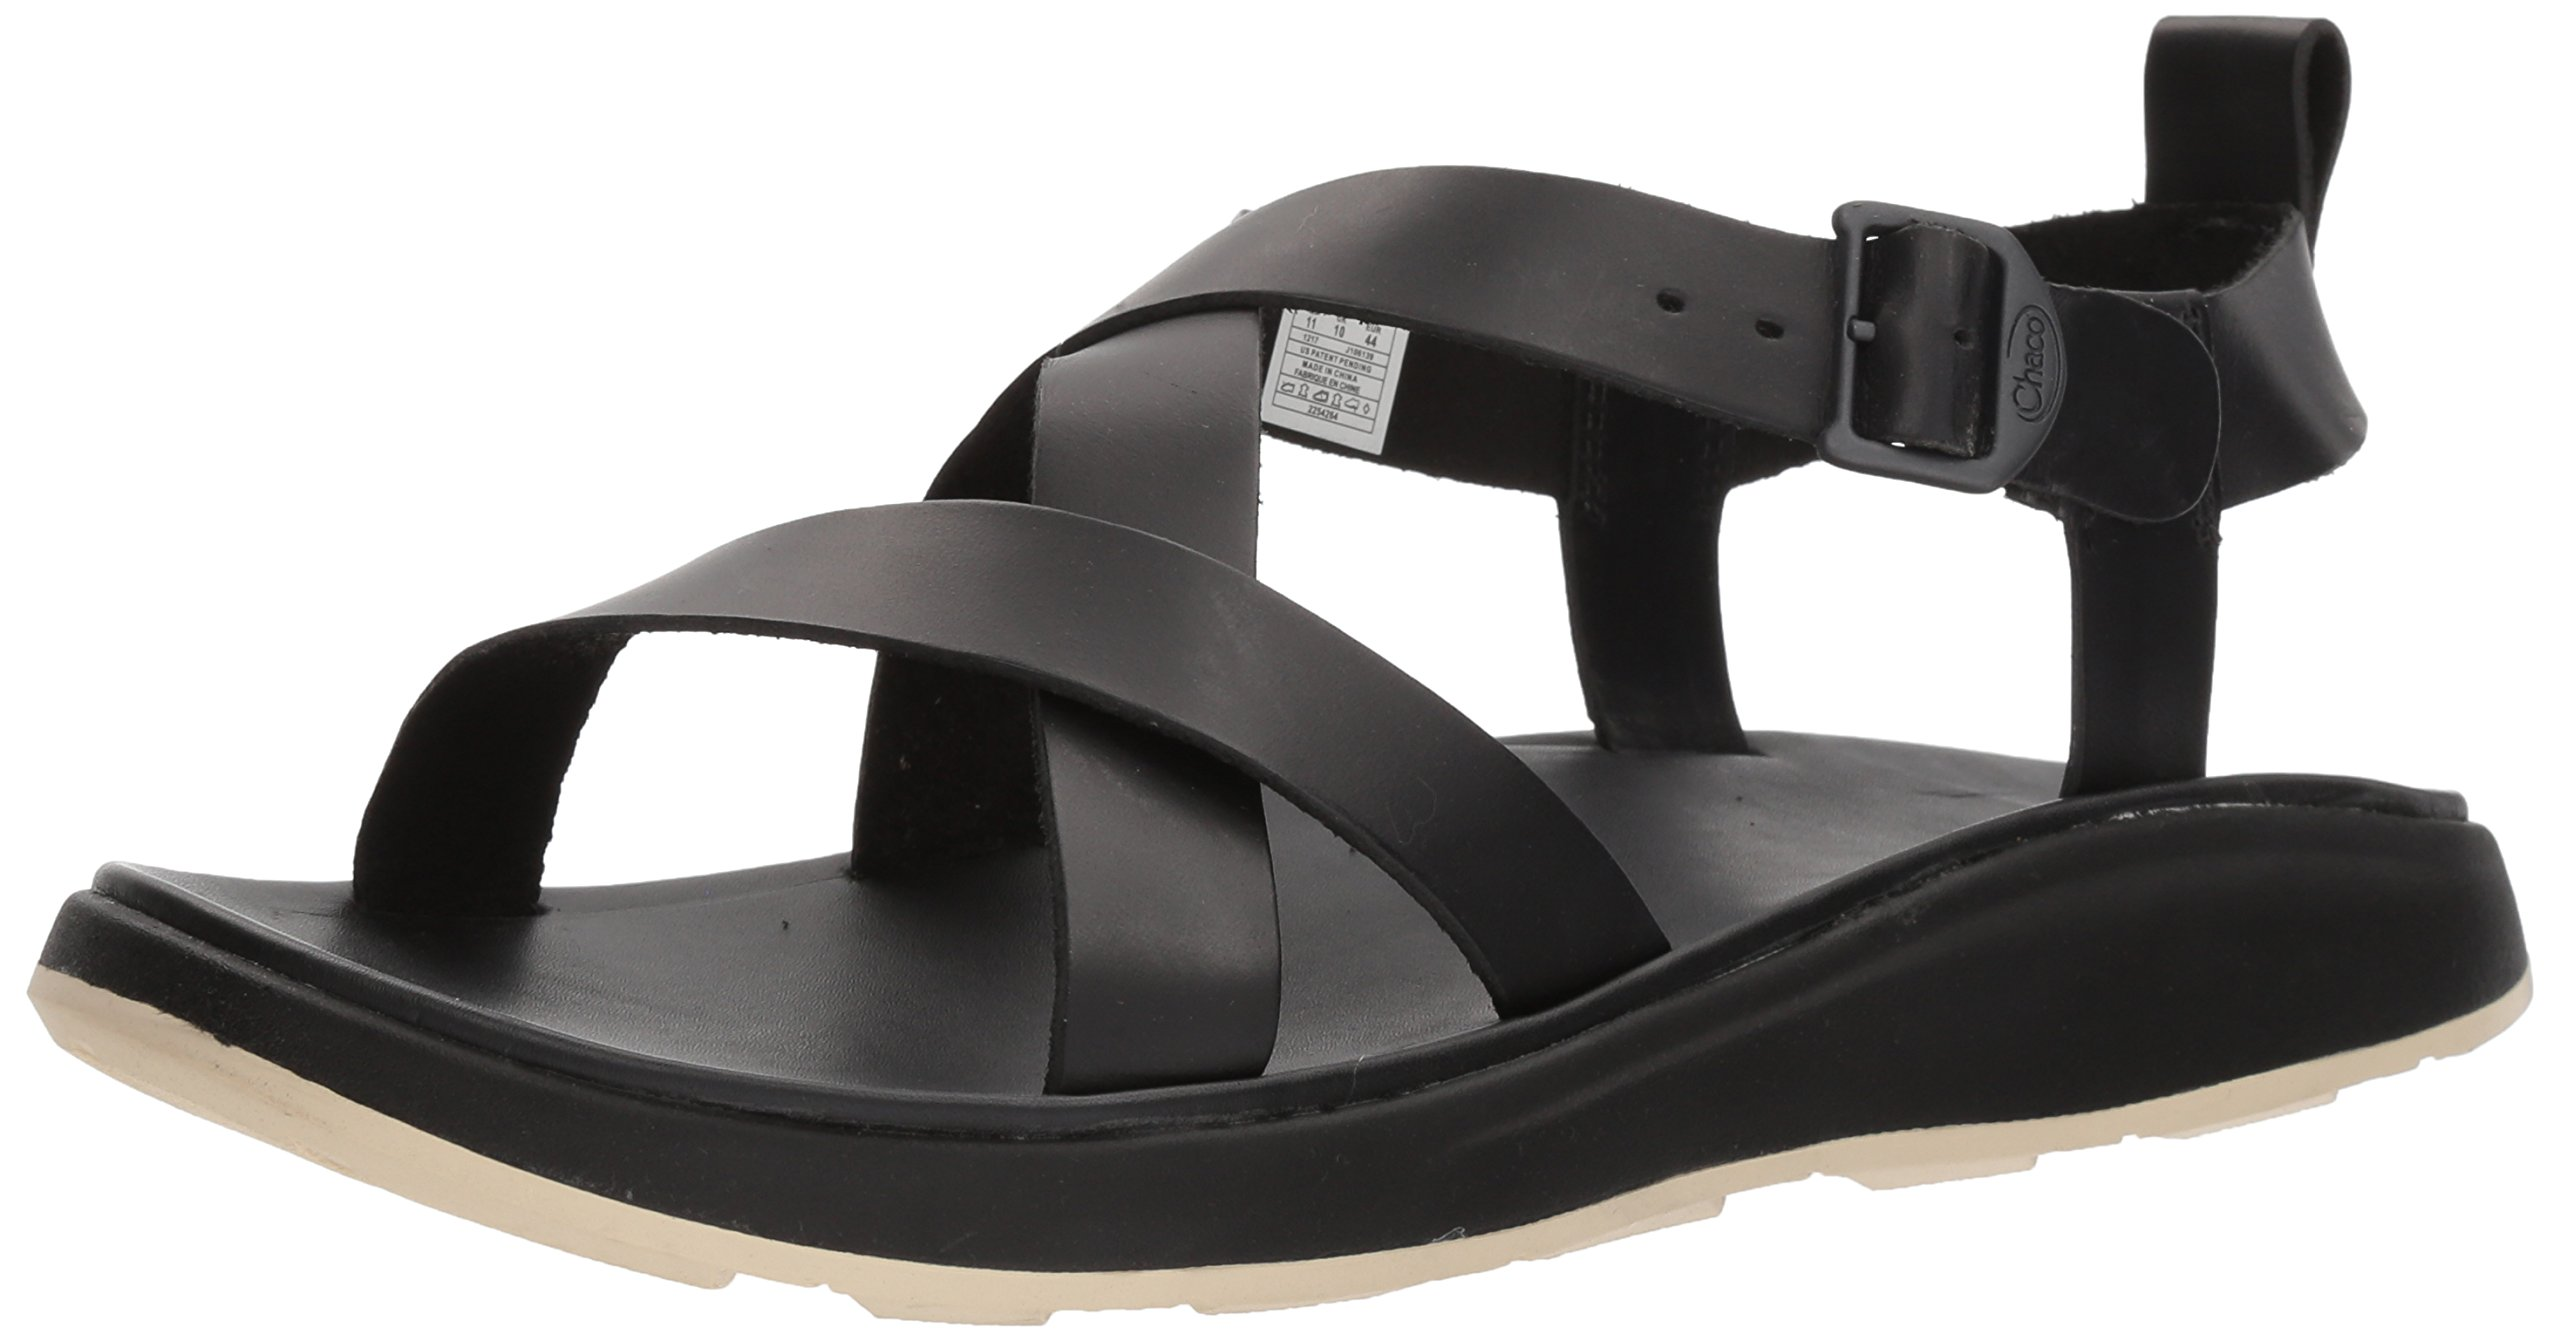 Chaco Men's Wayfarer Sandal, Black, 9 Medium US by Chaco